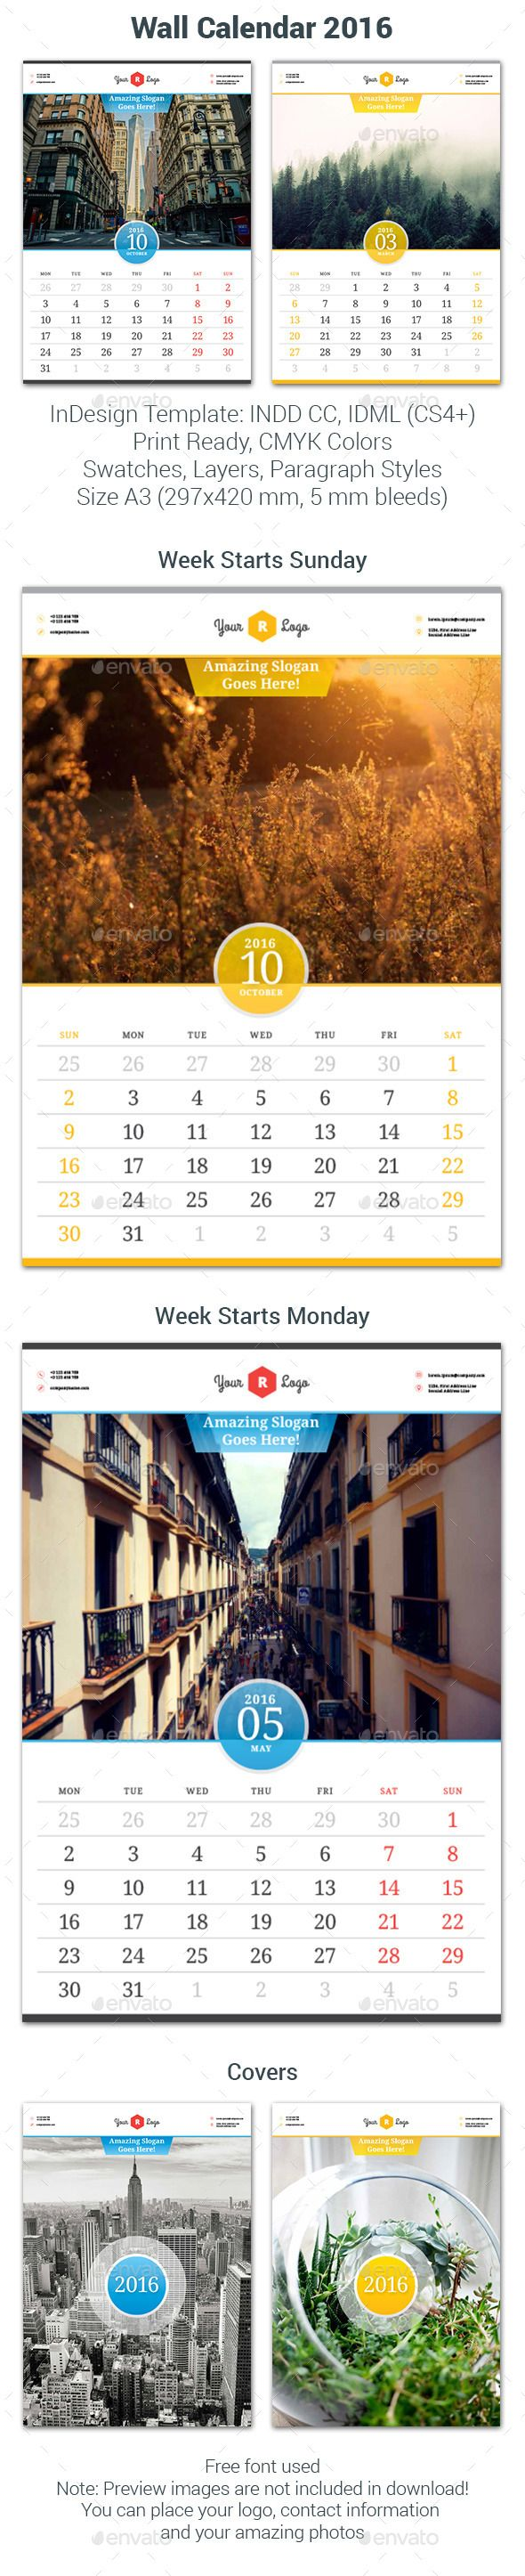 Calendar Templates Graphic Design : Pin by best graphic design on calendar templates